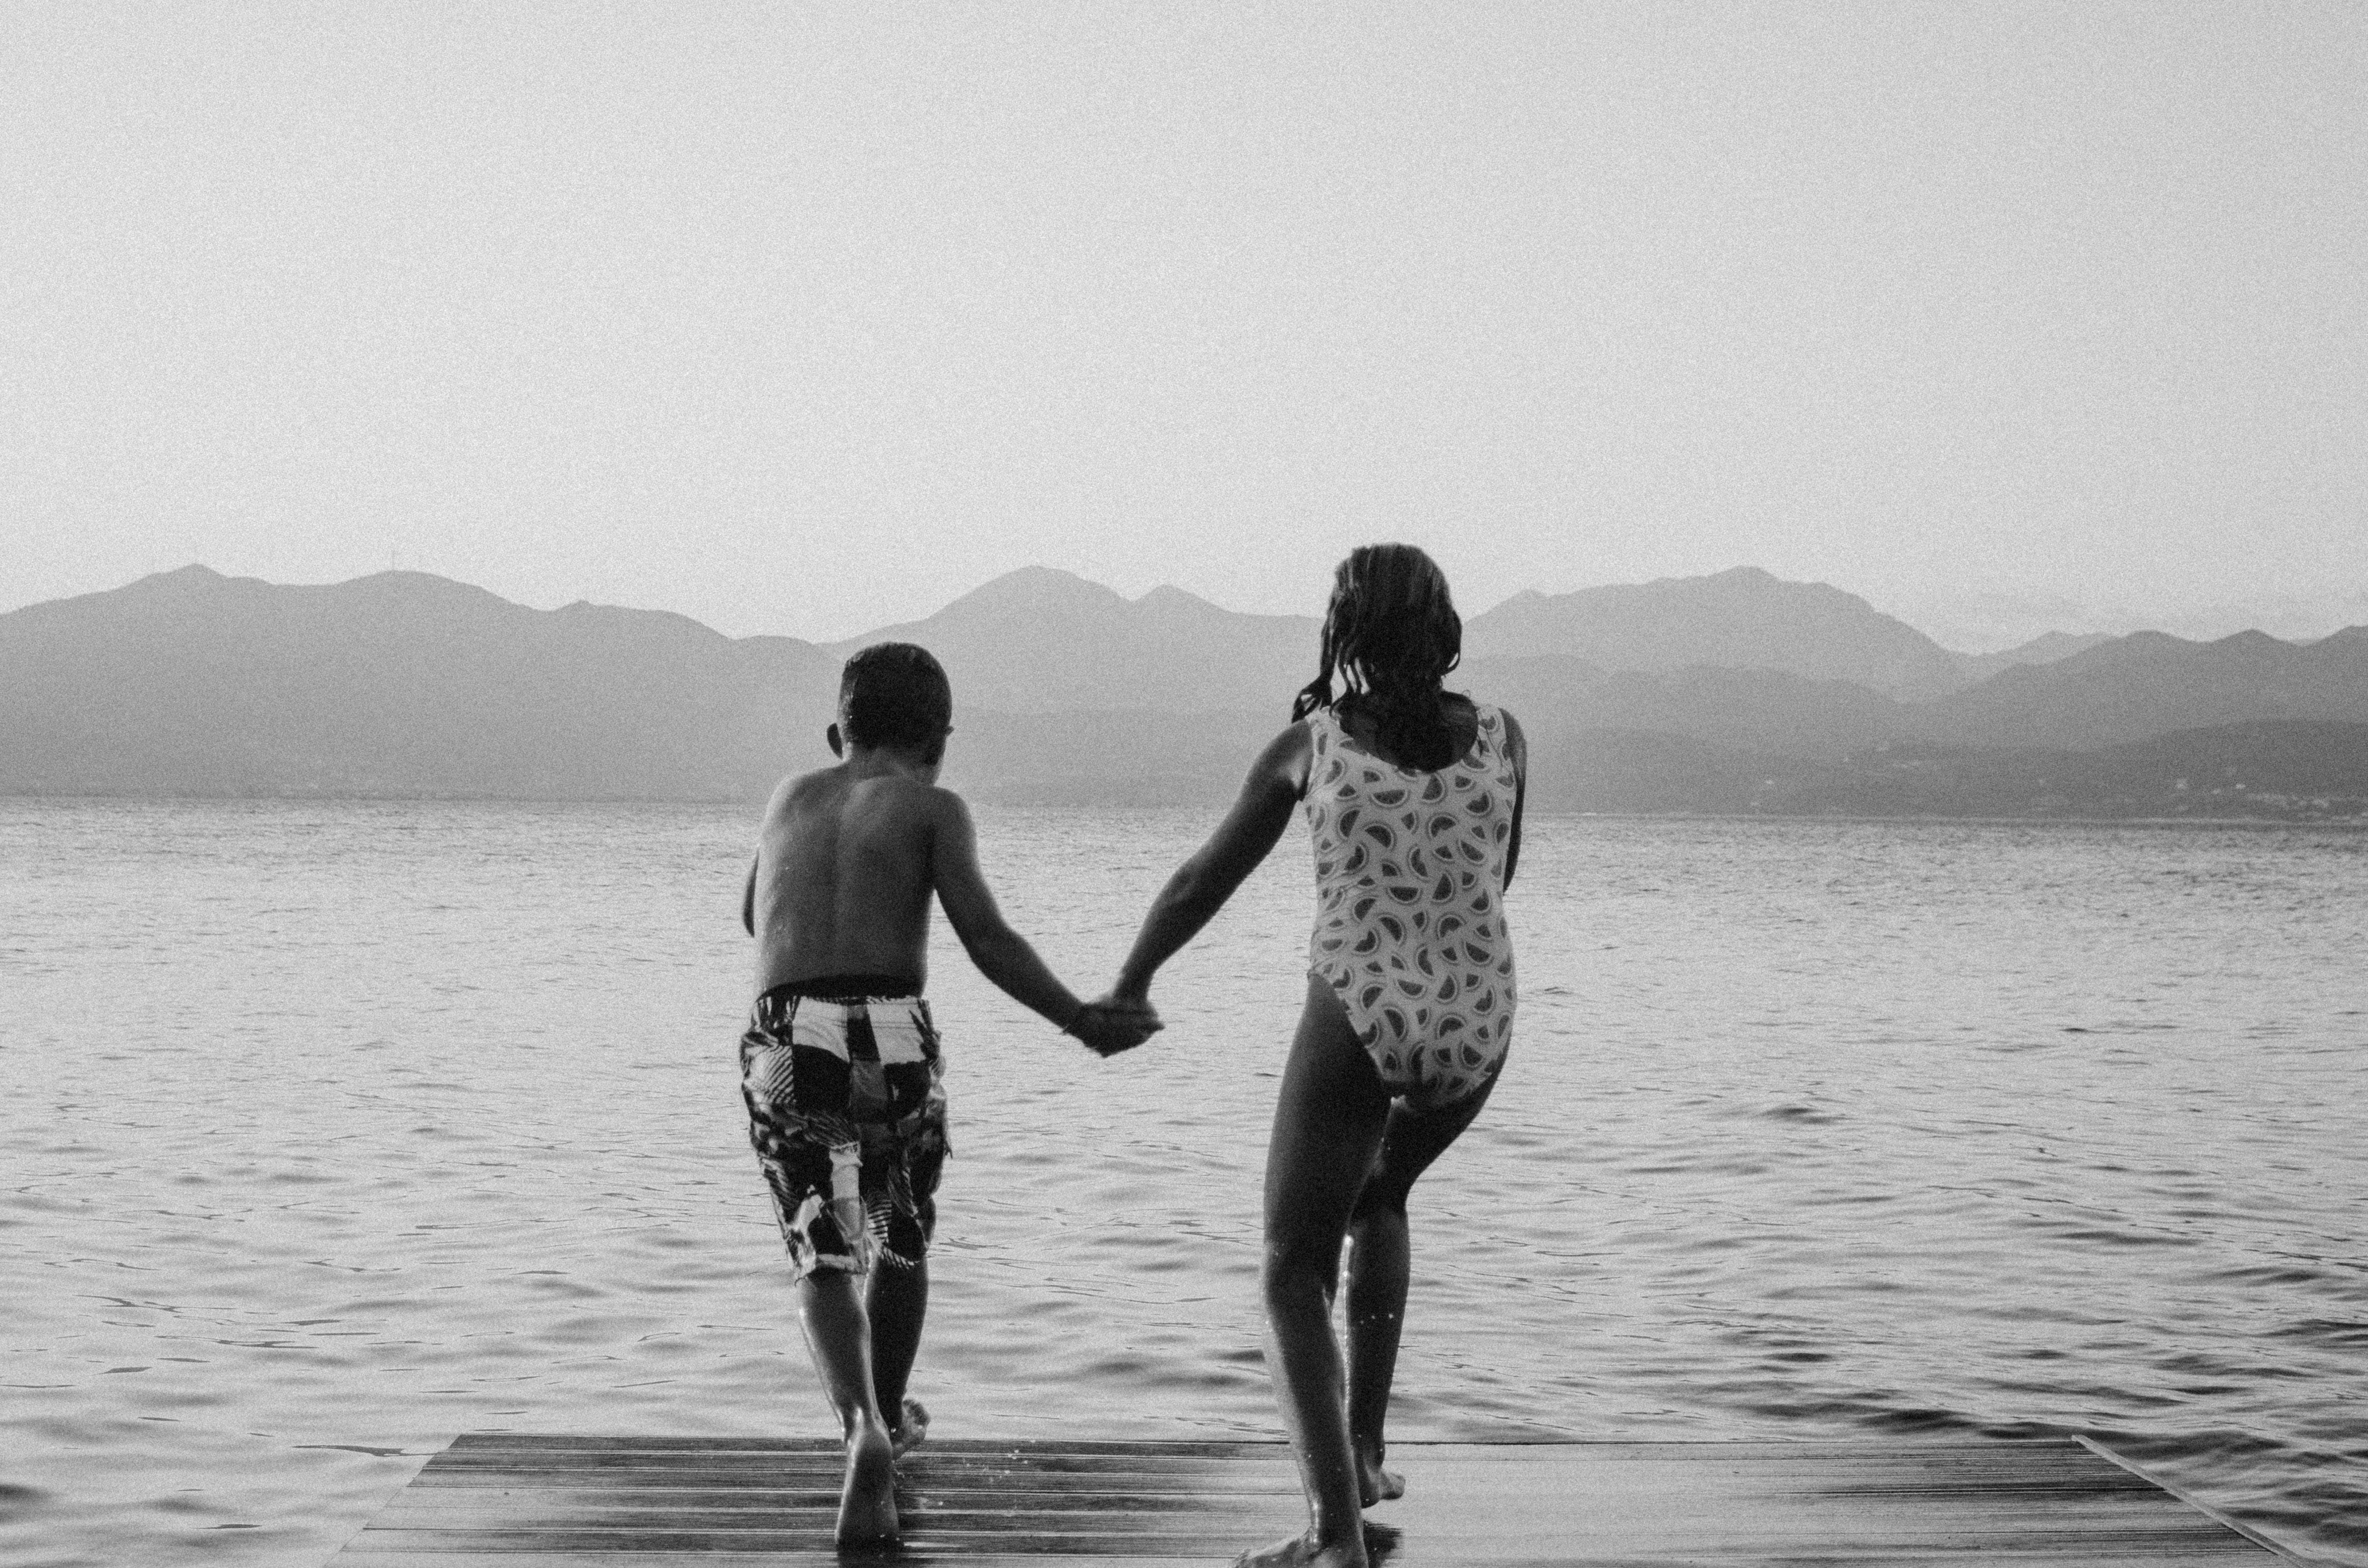 grayscale photography of girl and boy standing beside body of water